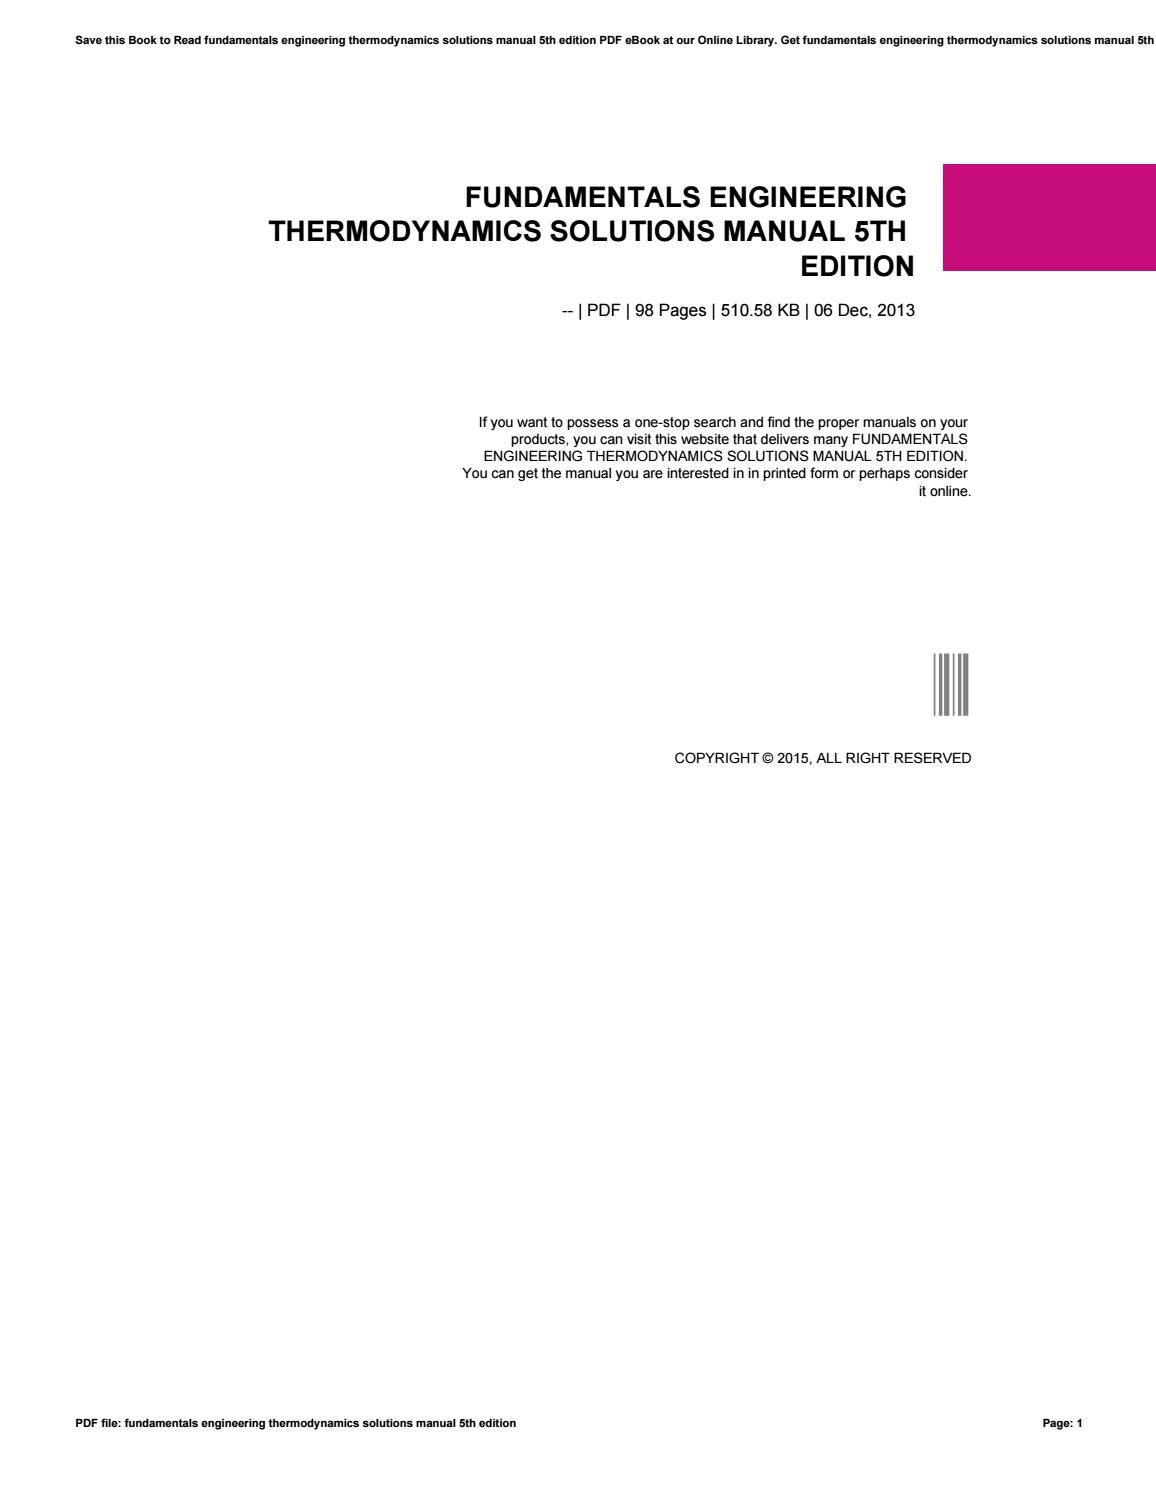 Fundamentals engineering thermodynamics solutions manual 5th edition by  ax80mail22 - issuu